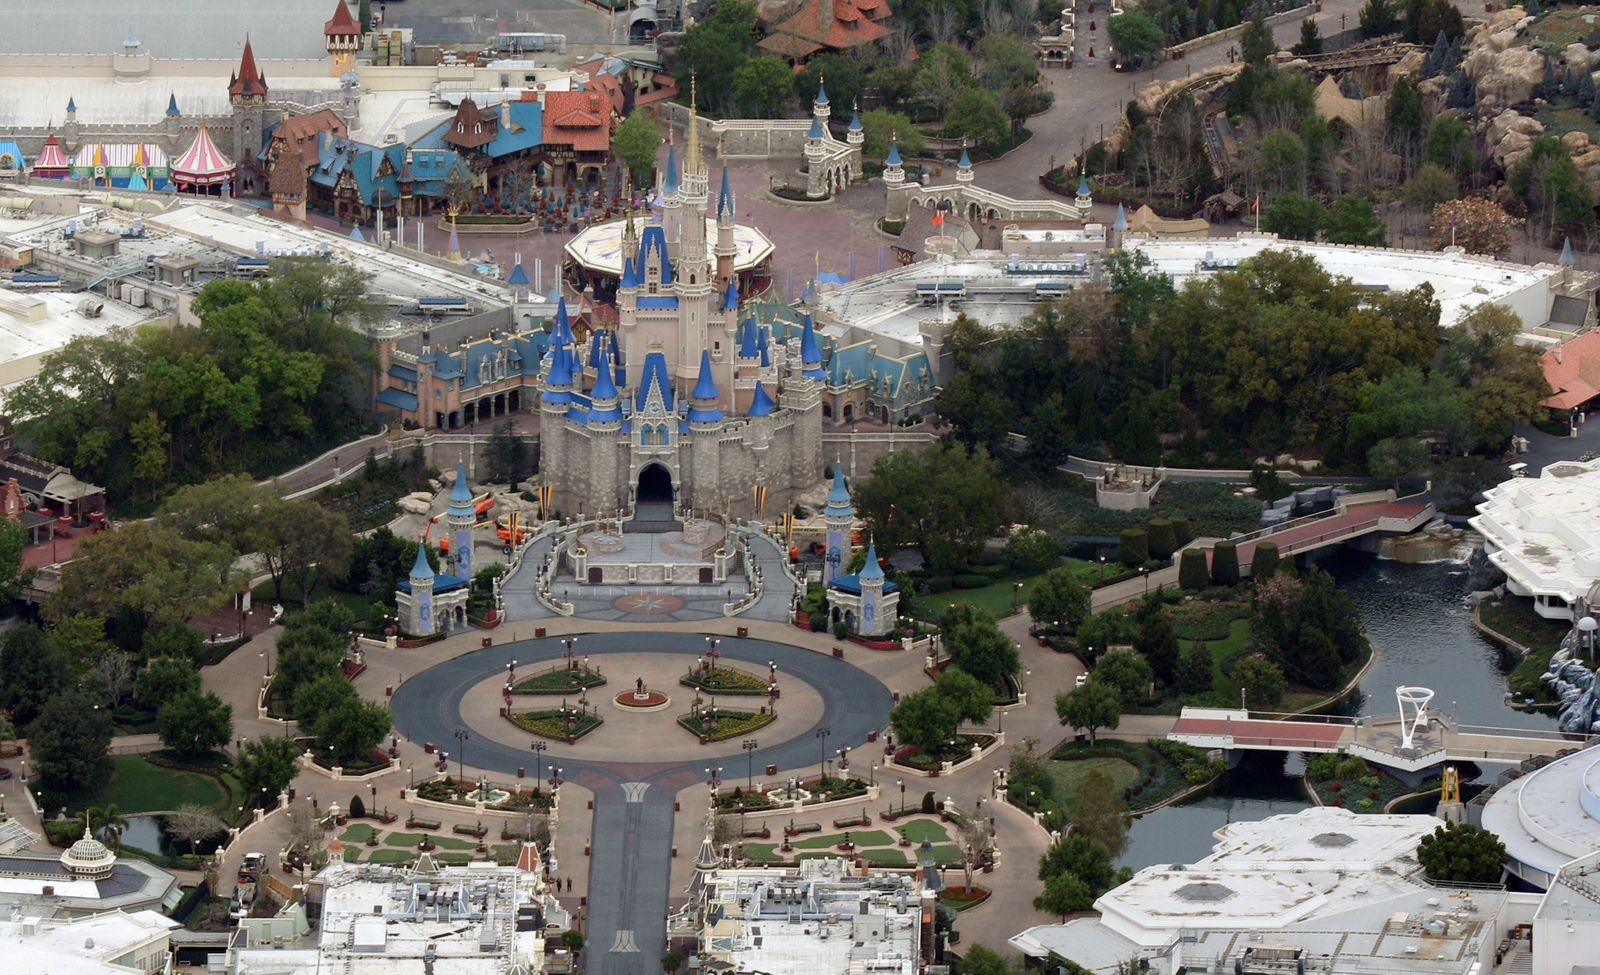 Disney's Magic Kingdom theme park sits empty after it closed in an effort to combat the spread of coronavirus disease (COVID-19) in Orlando